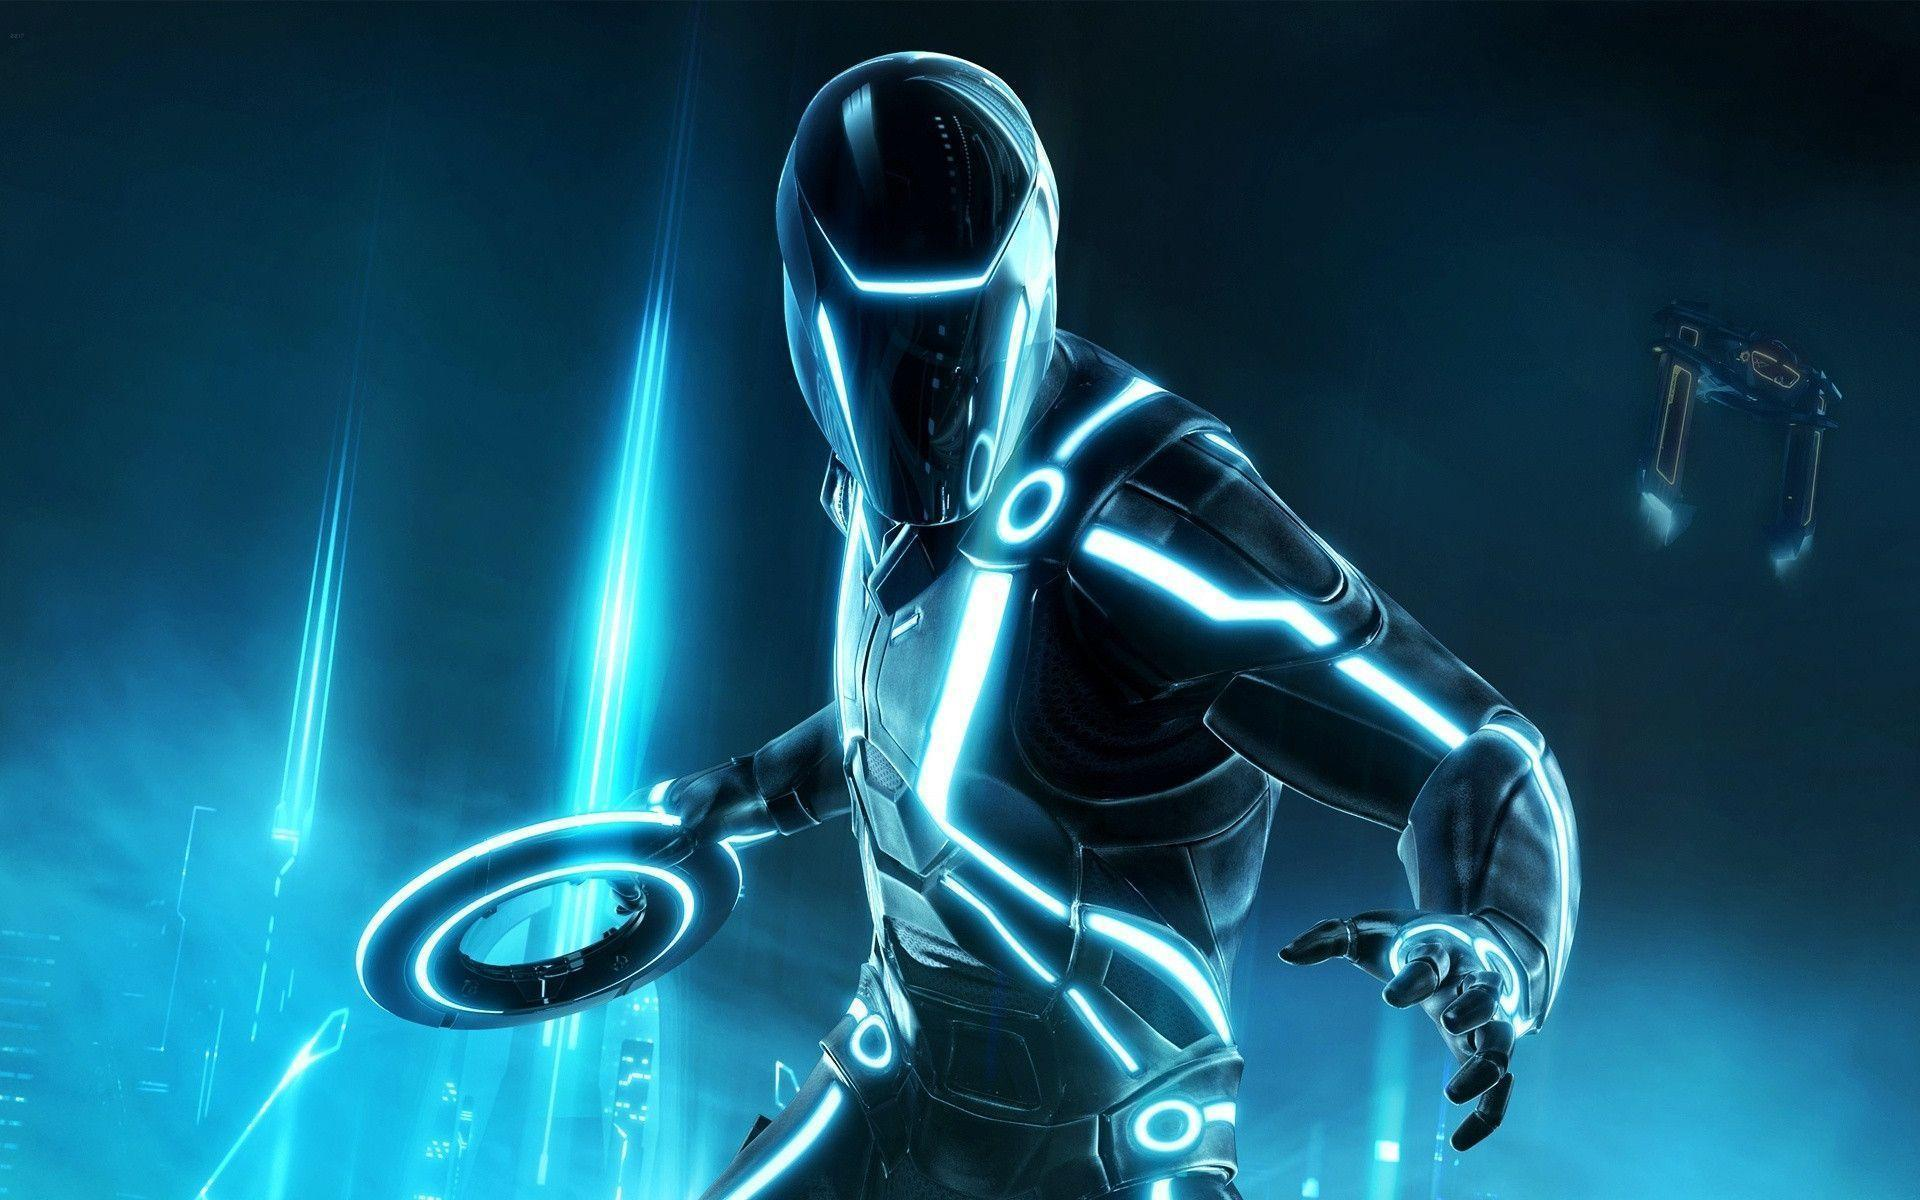 tron wallpaper hd style - photo #42